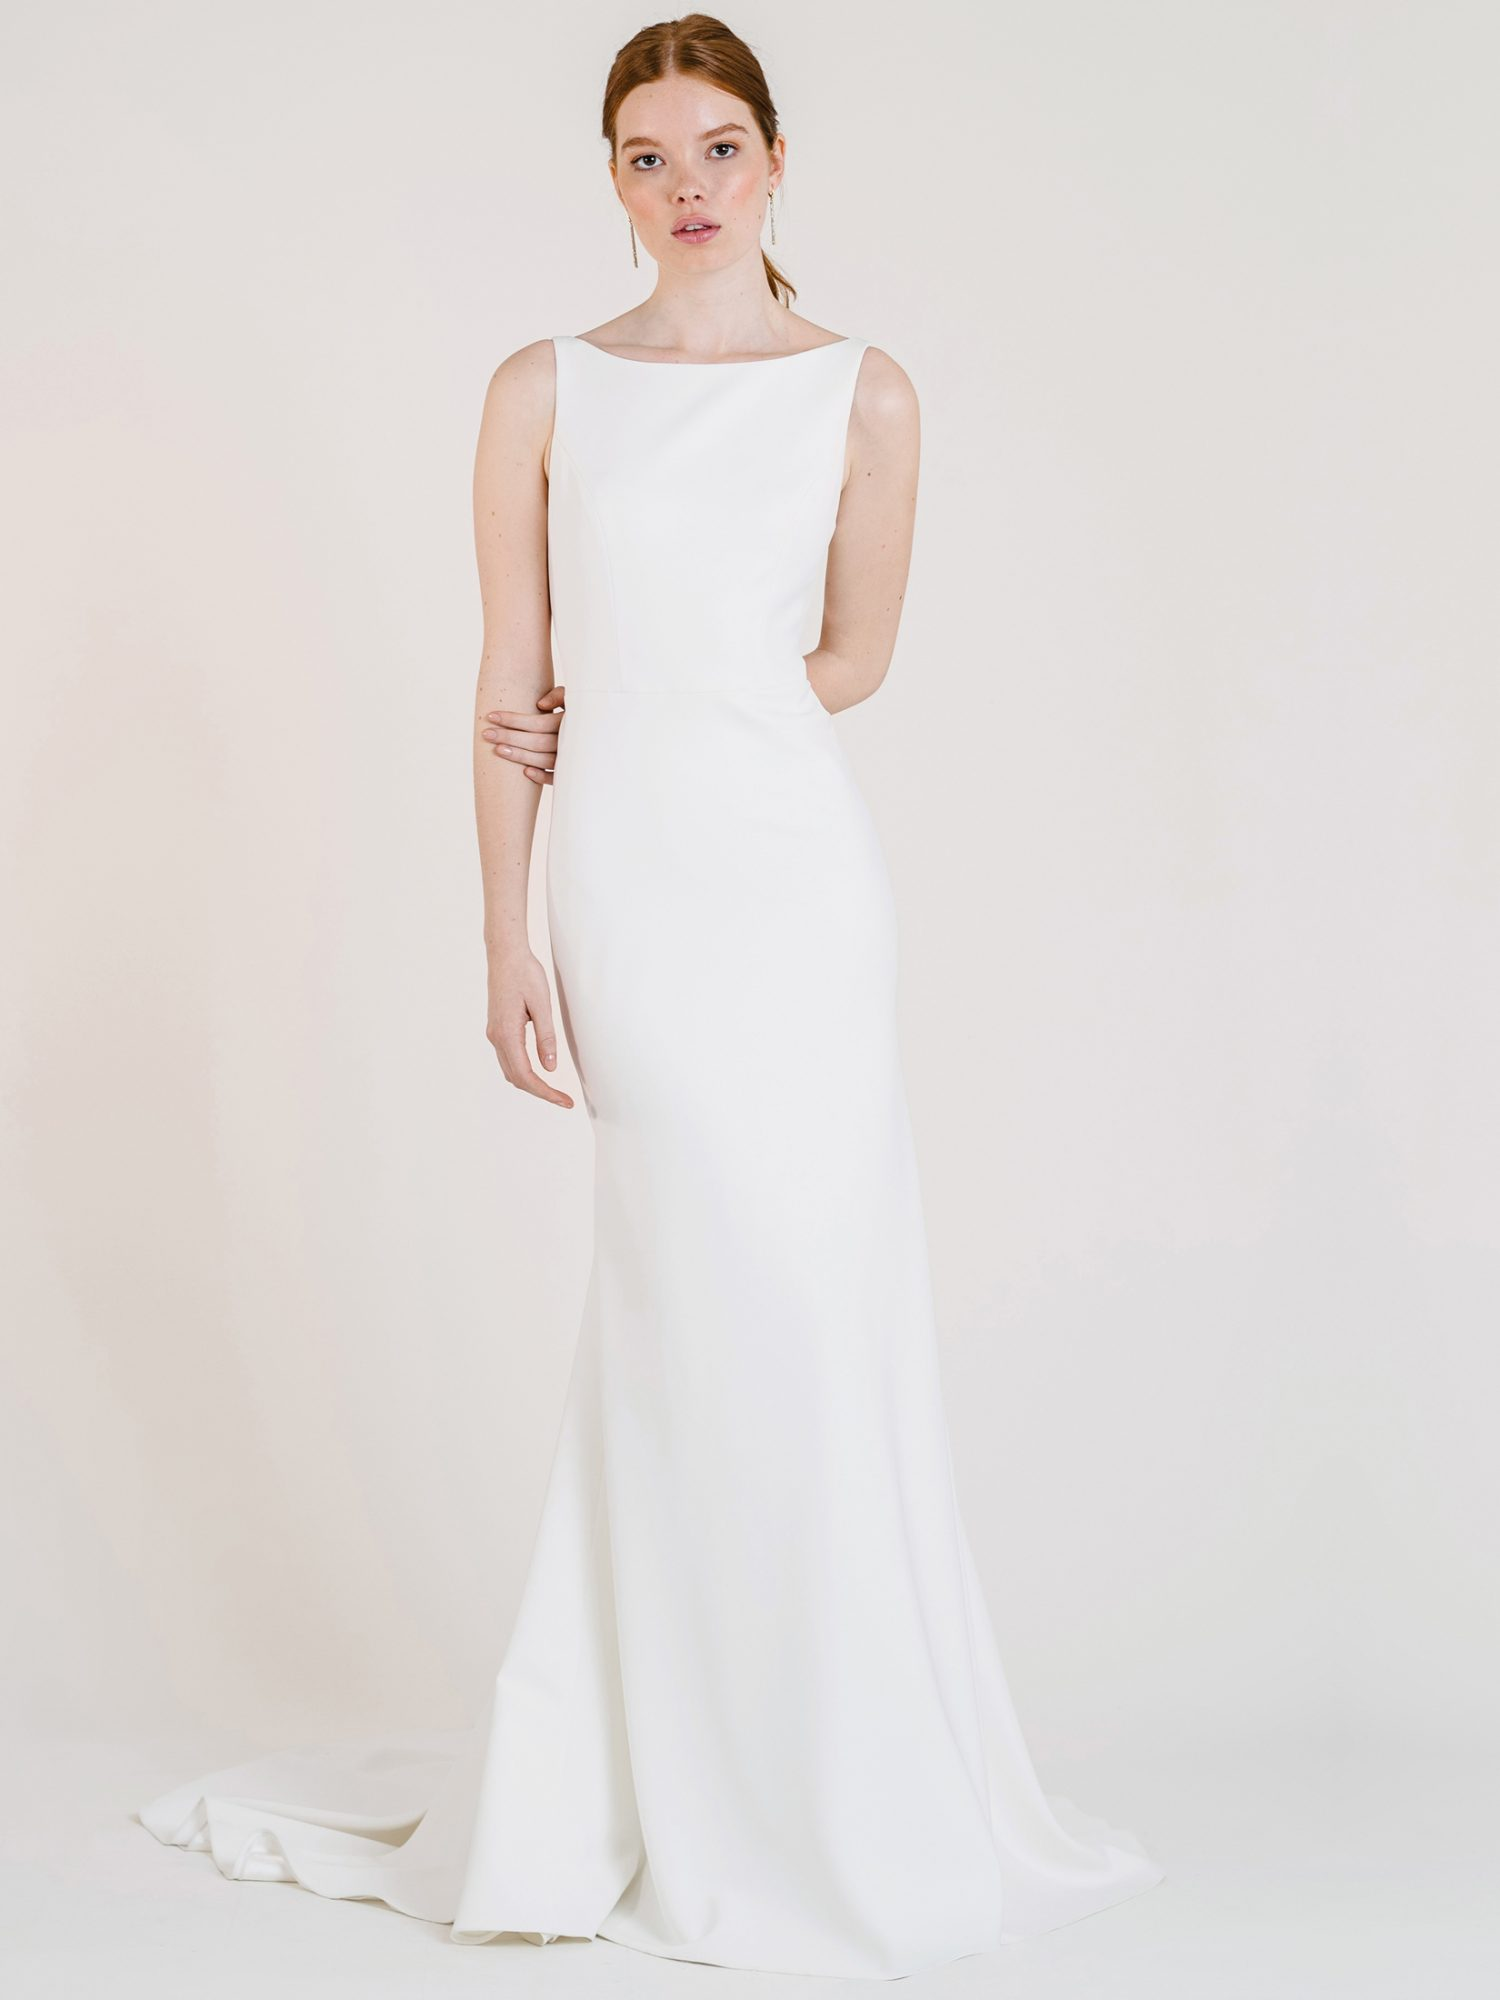 jenny by jenny yoo high neck sleeveless wedding dress fall 2020